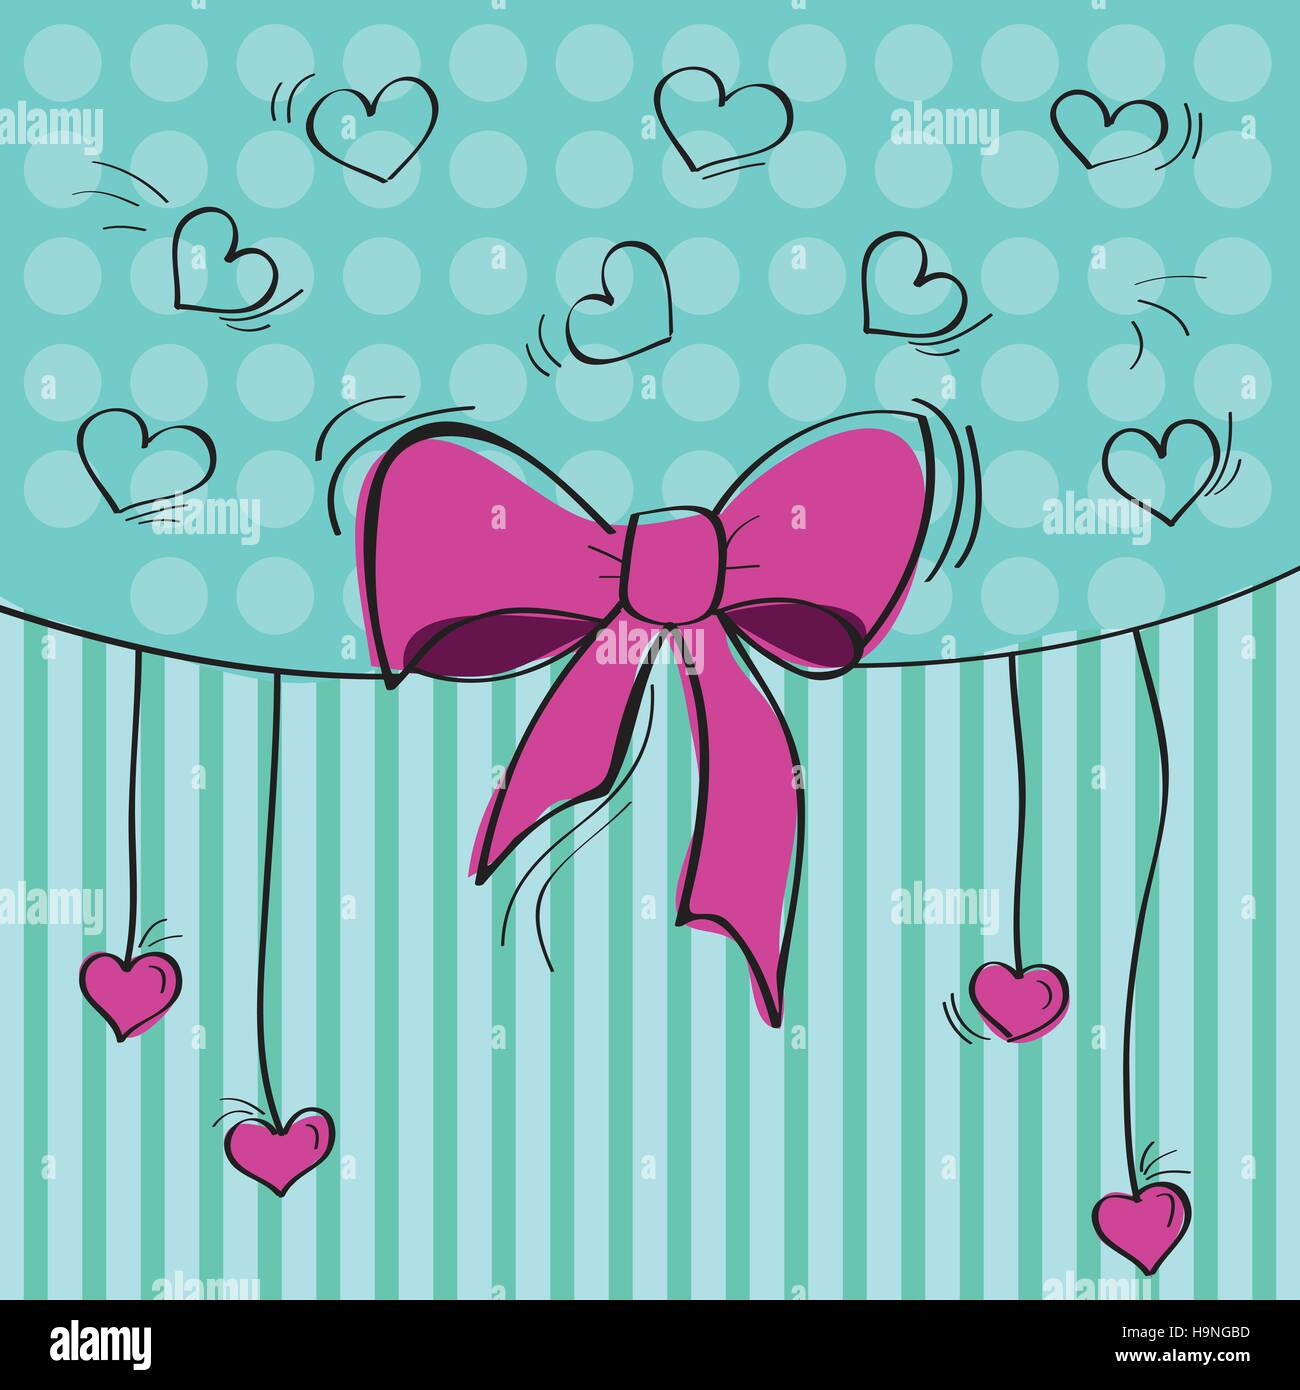 Valentines composition of the hearts. Vector illustration - Stock Image